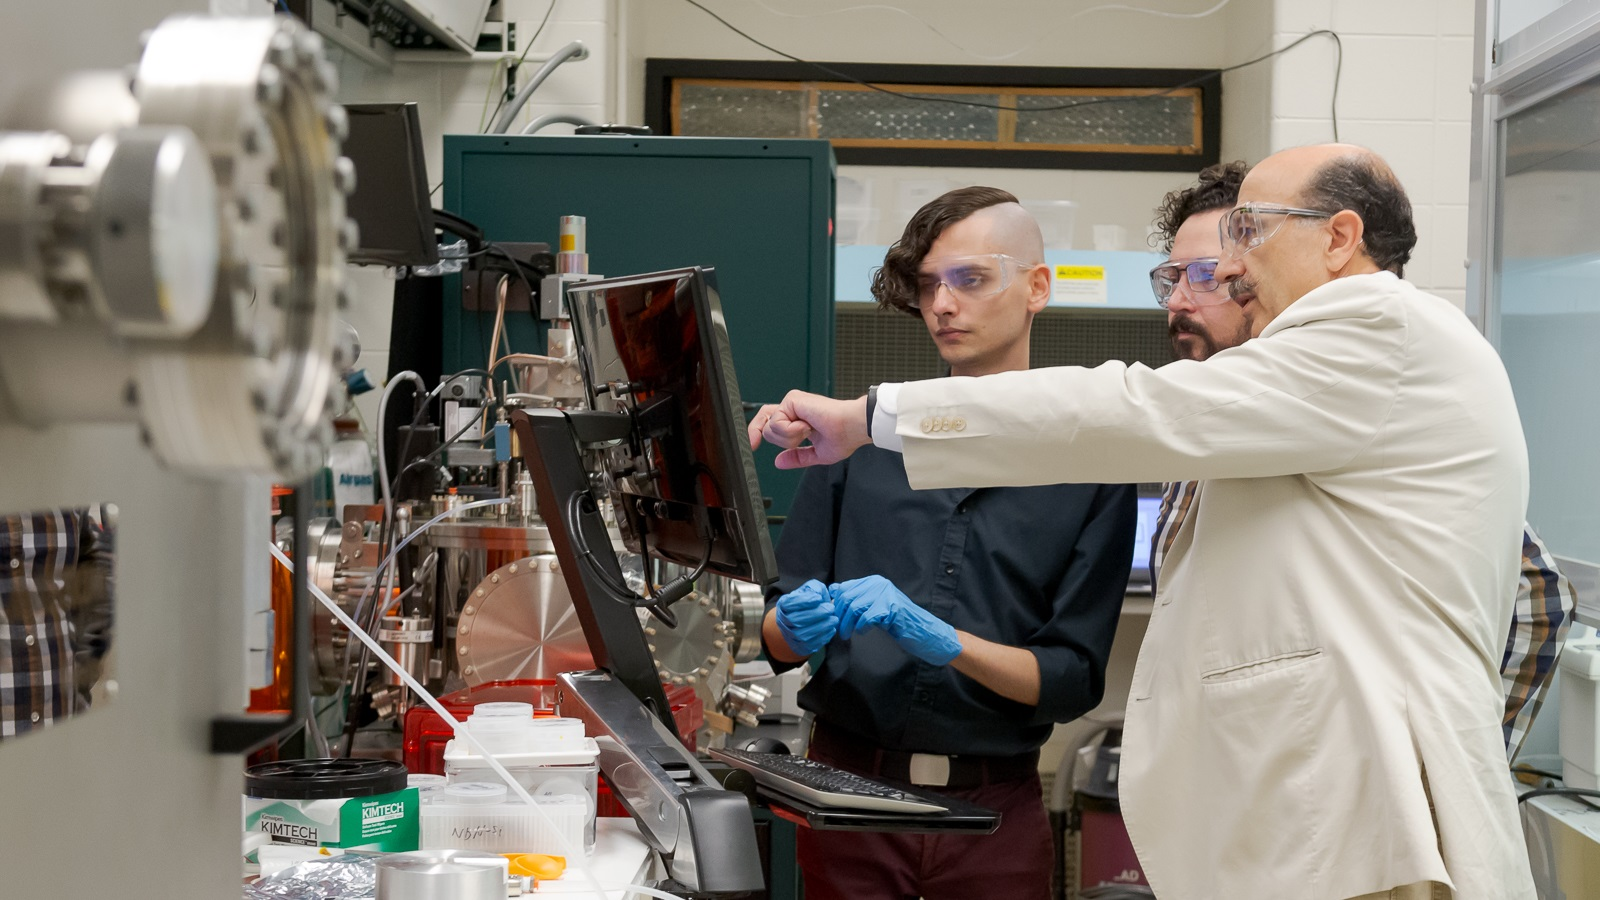 Argonne scientists at nanowire fabrication machine. Left to right: T. Polakovic, W.R. Armstrong and Z.-E. Meziani. (Image by Argonne National Laboratory.)